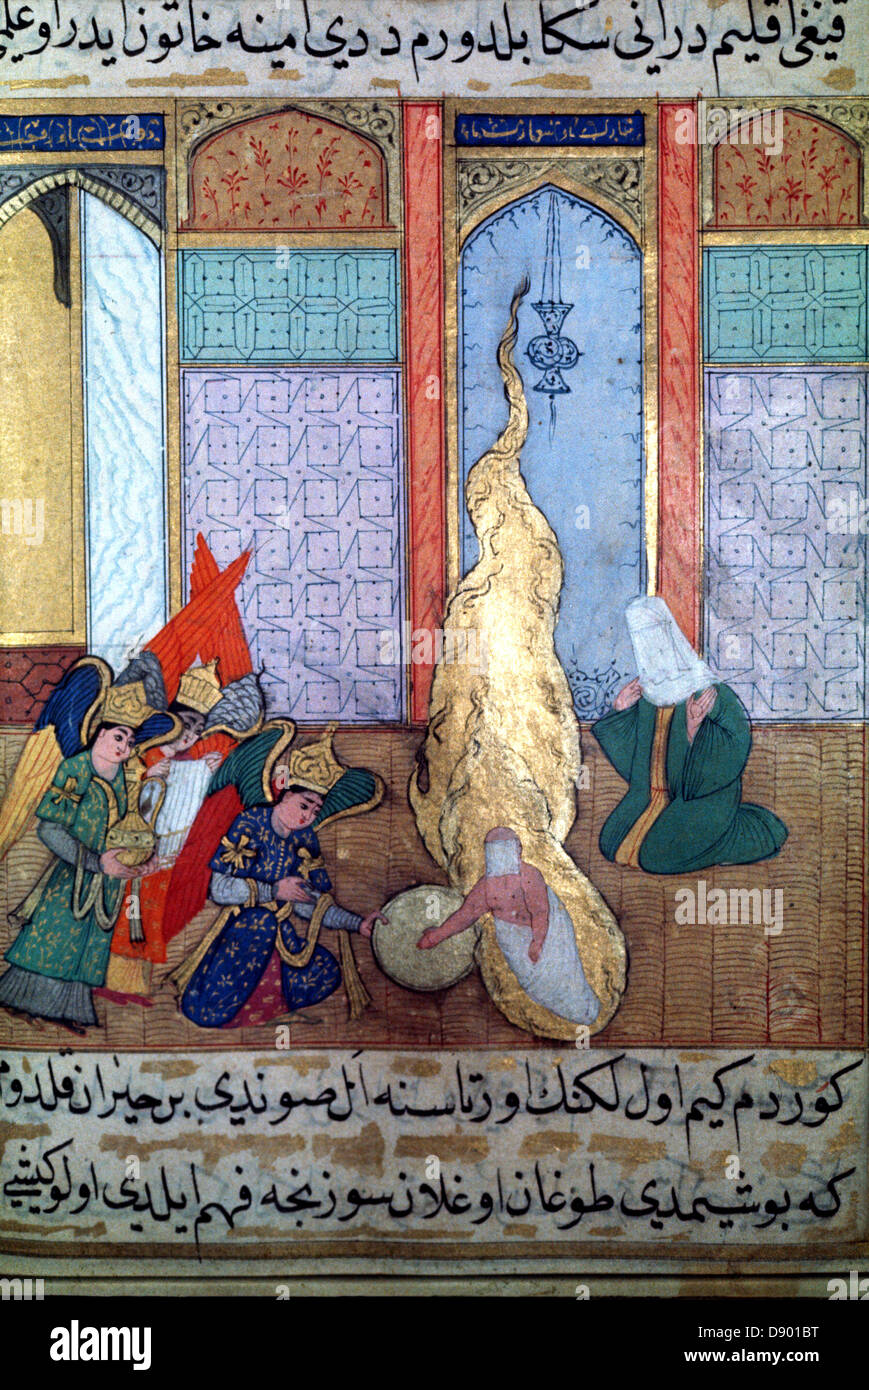 Birth of the Prophet, 16th century ms H1223, Topkapi Palace, Istanbul, Turkey Stock Photo